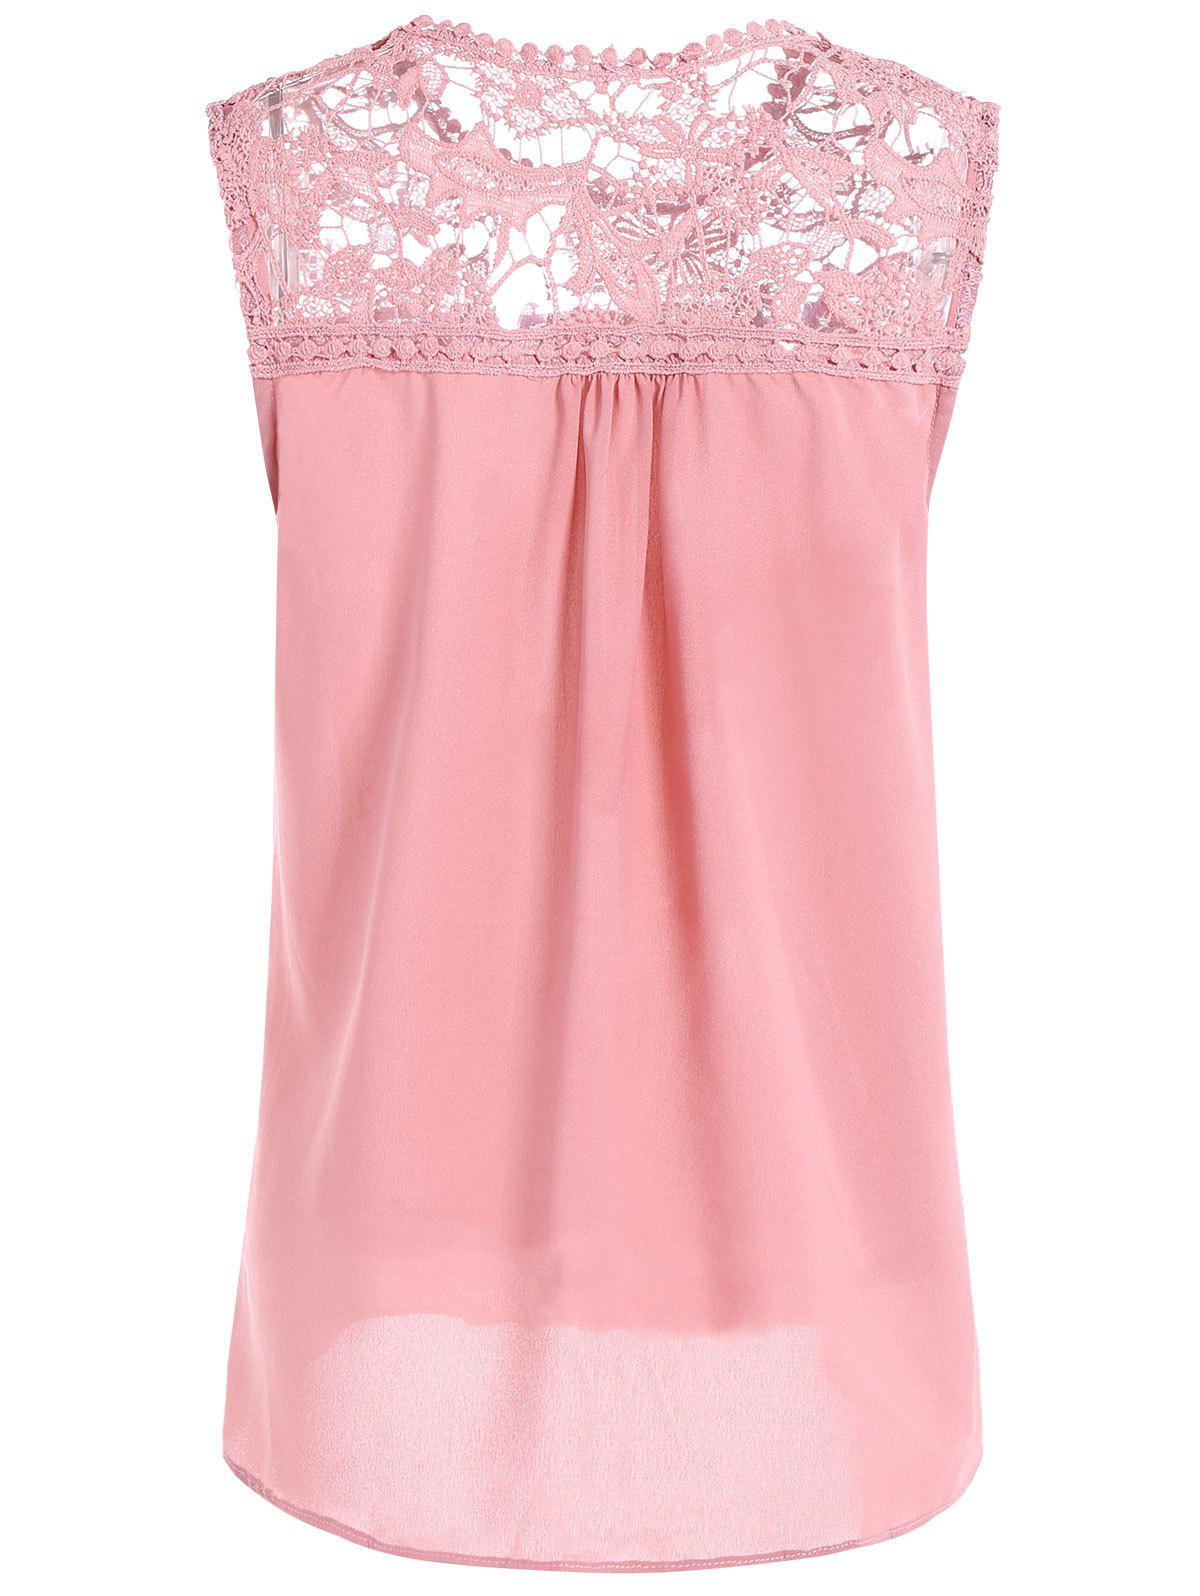 Openwork Lace Spliced Shirred Tank Top - PINK 4XL